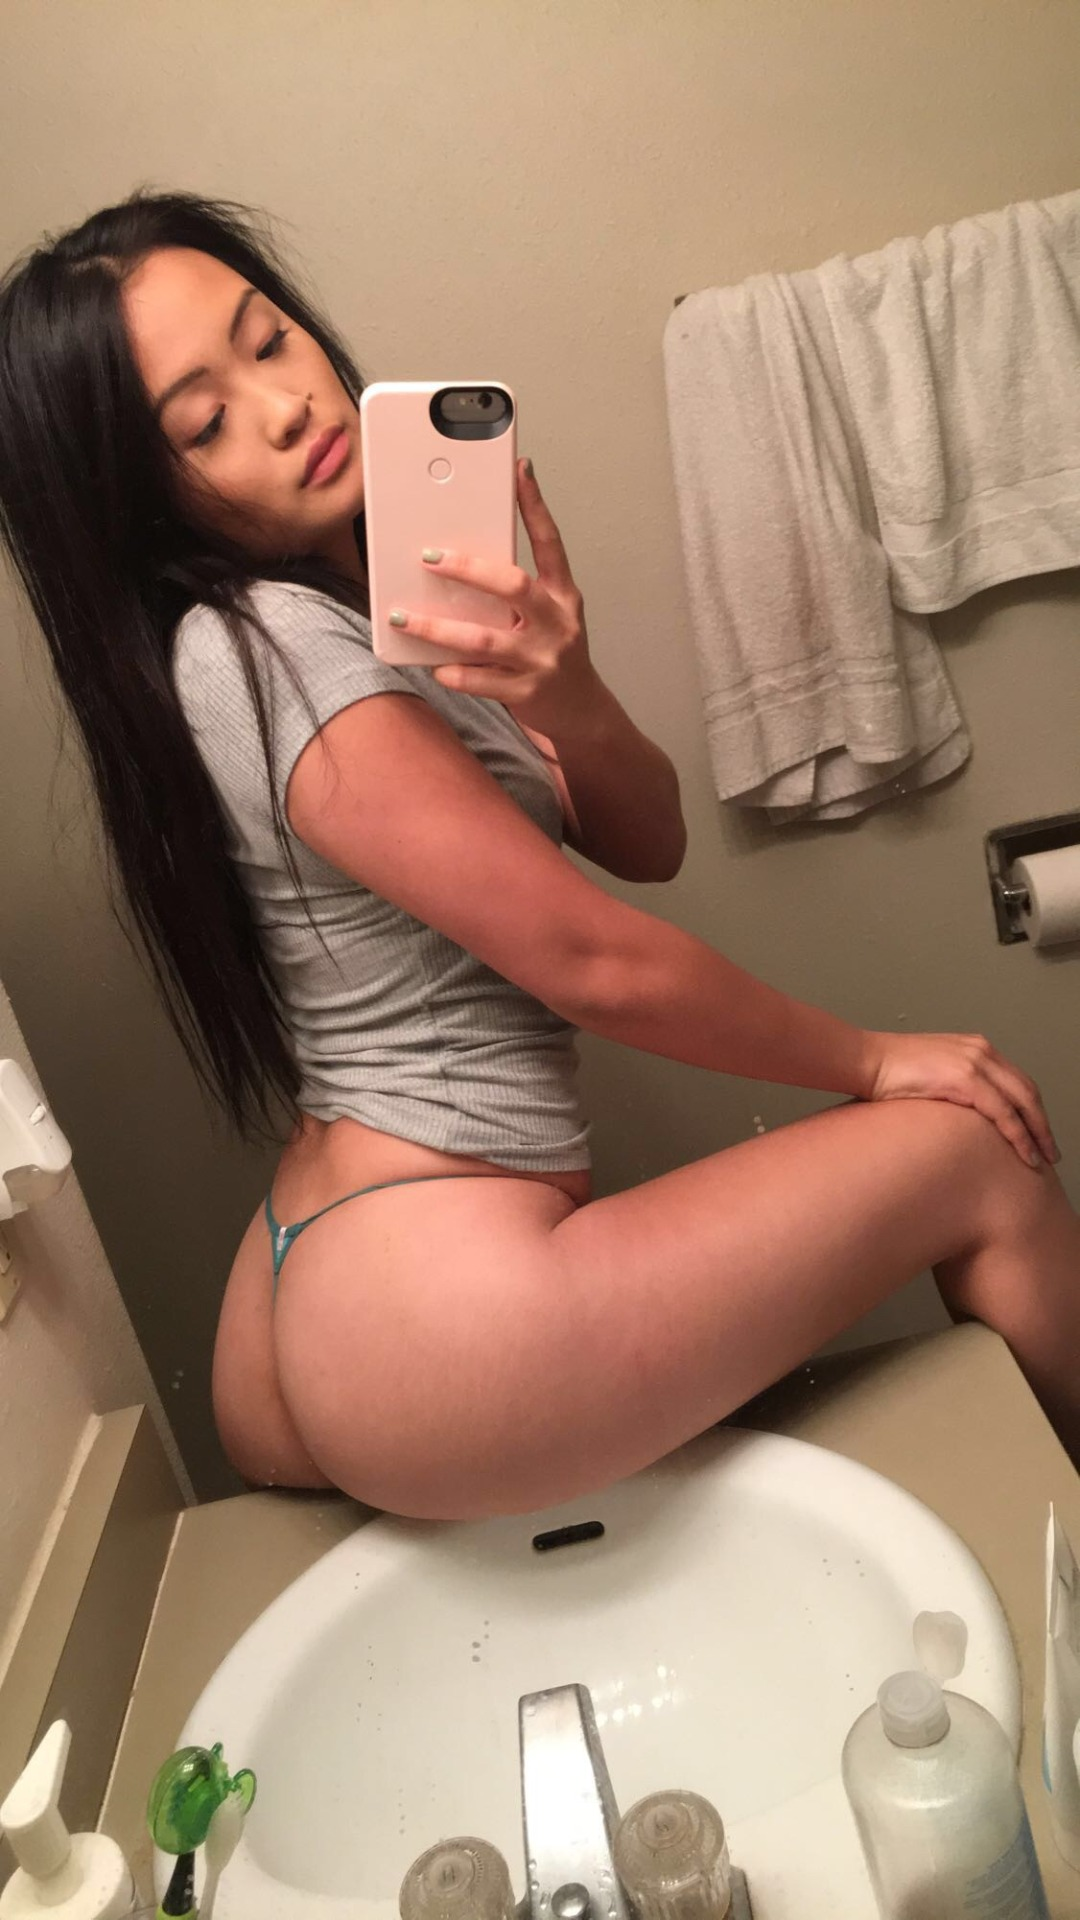 xnikki snapping sultry selfies in the sink